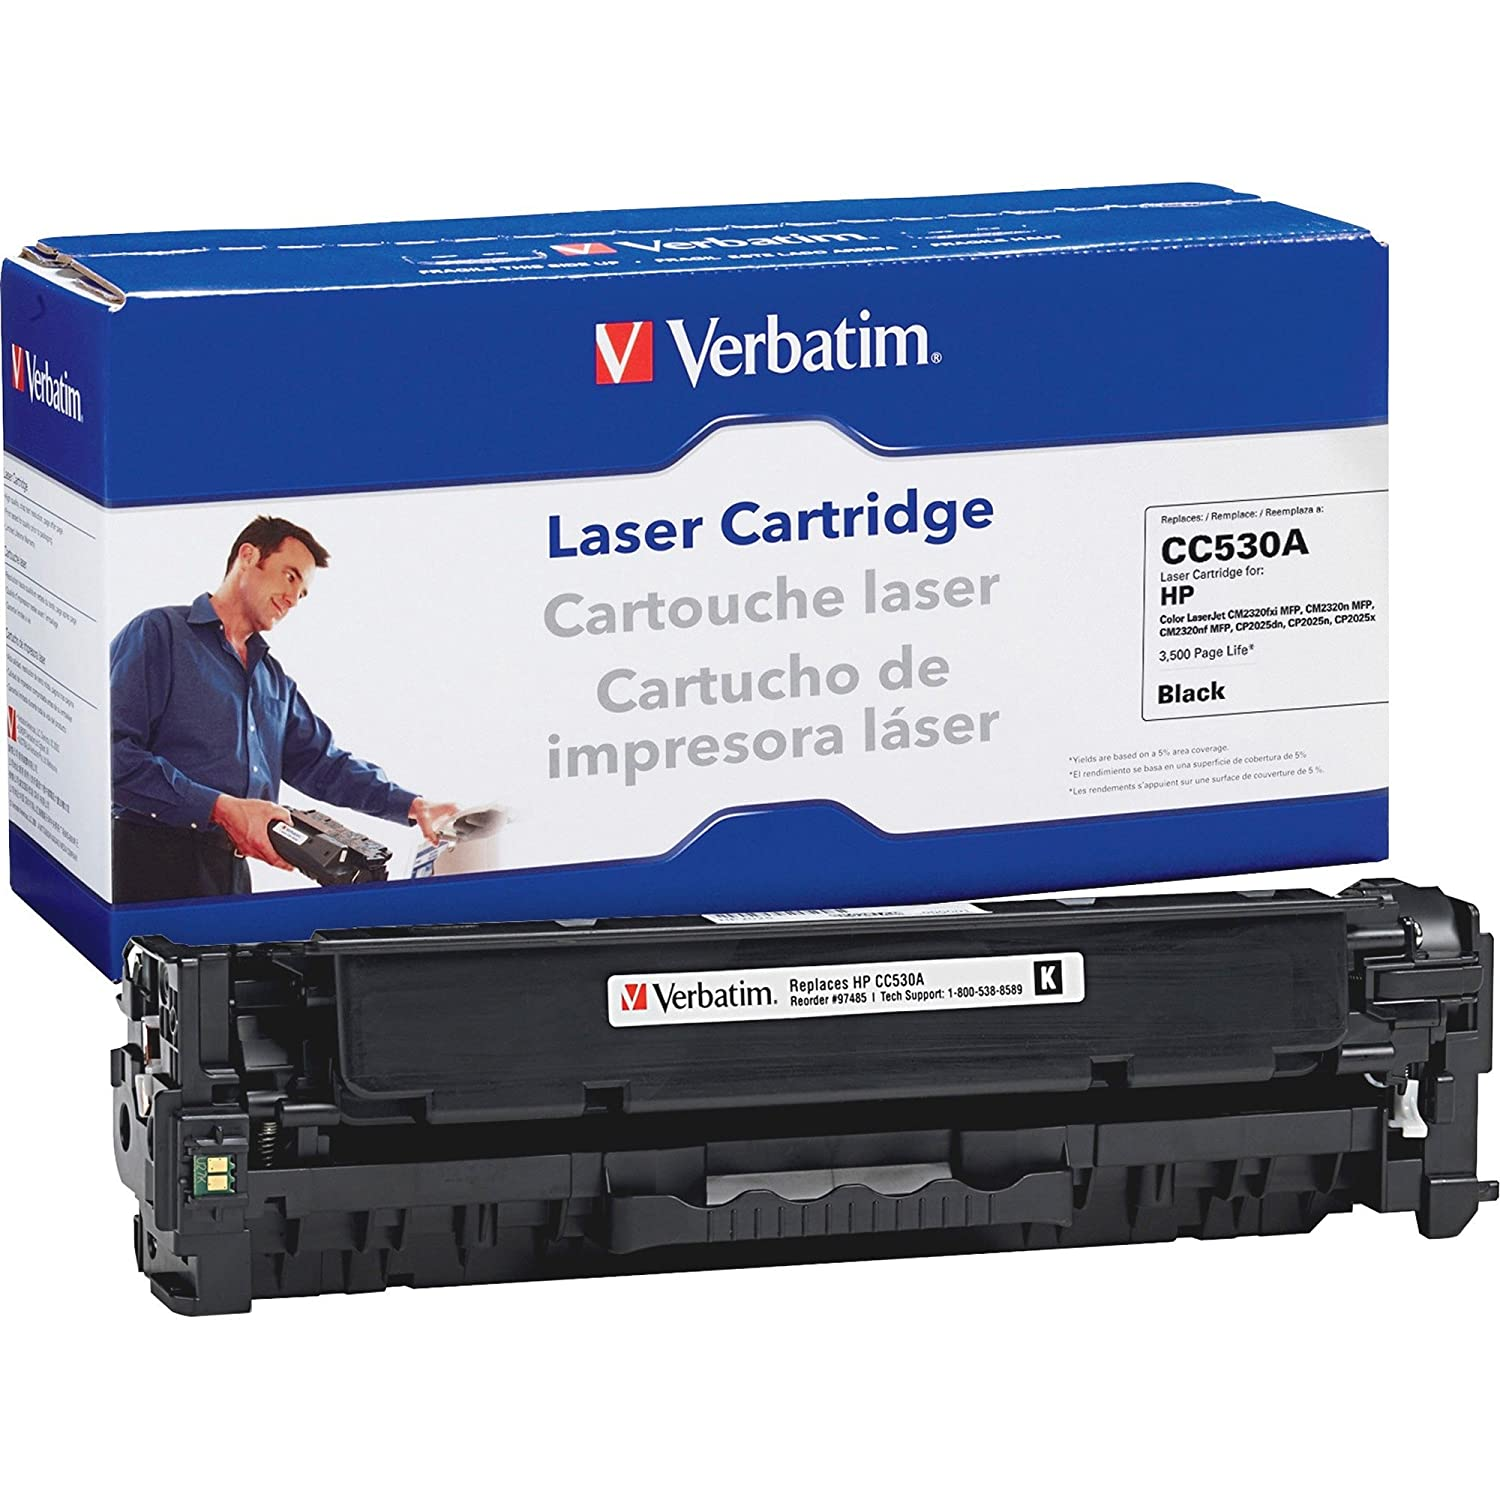 Amazon.com: Verbatim America, LLC 97485 Toner Cartridge ...